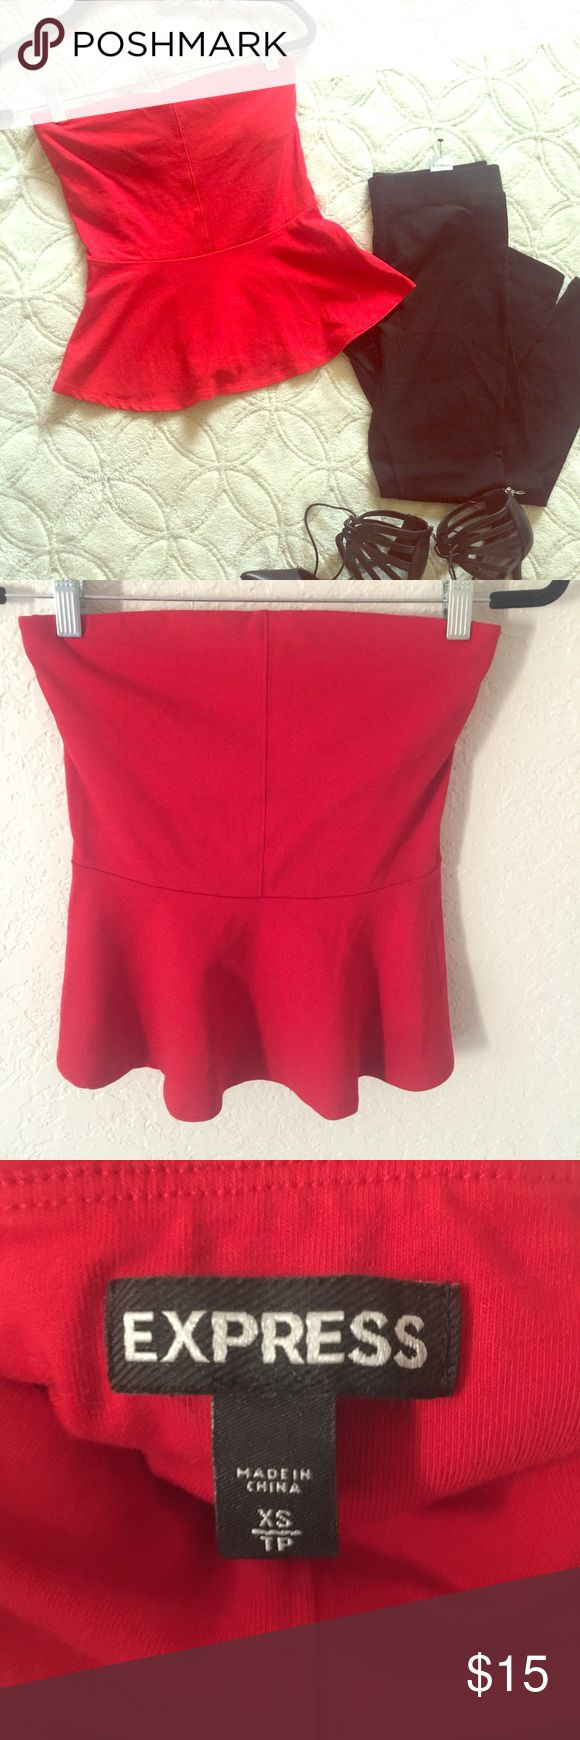 Express Strapless Peplum Tube Top Red Worn only once for a New Years Eve.                A sexy, shoulder-baring partner for jeans, shorts and sleek skirts. With the light support of two-ply stretch cotton on the bodice, plus some stay-put interior trim, this strapless top also takes practical considerations into account. Strapless sweetheart neckline, interior stay-put trim. Slip-on styling. Fitted two-ply bodice, seamed waist. Flared peplum ruffle. Cotton/Lycra spandex. Machine wash…